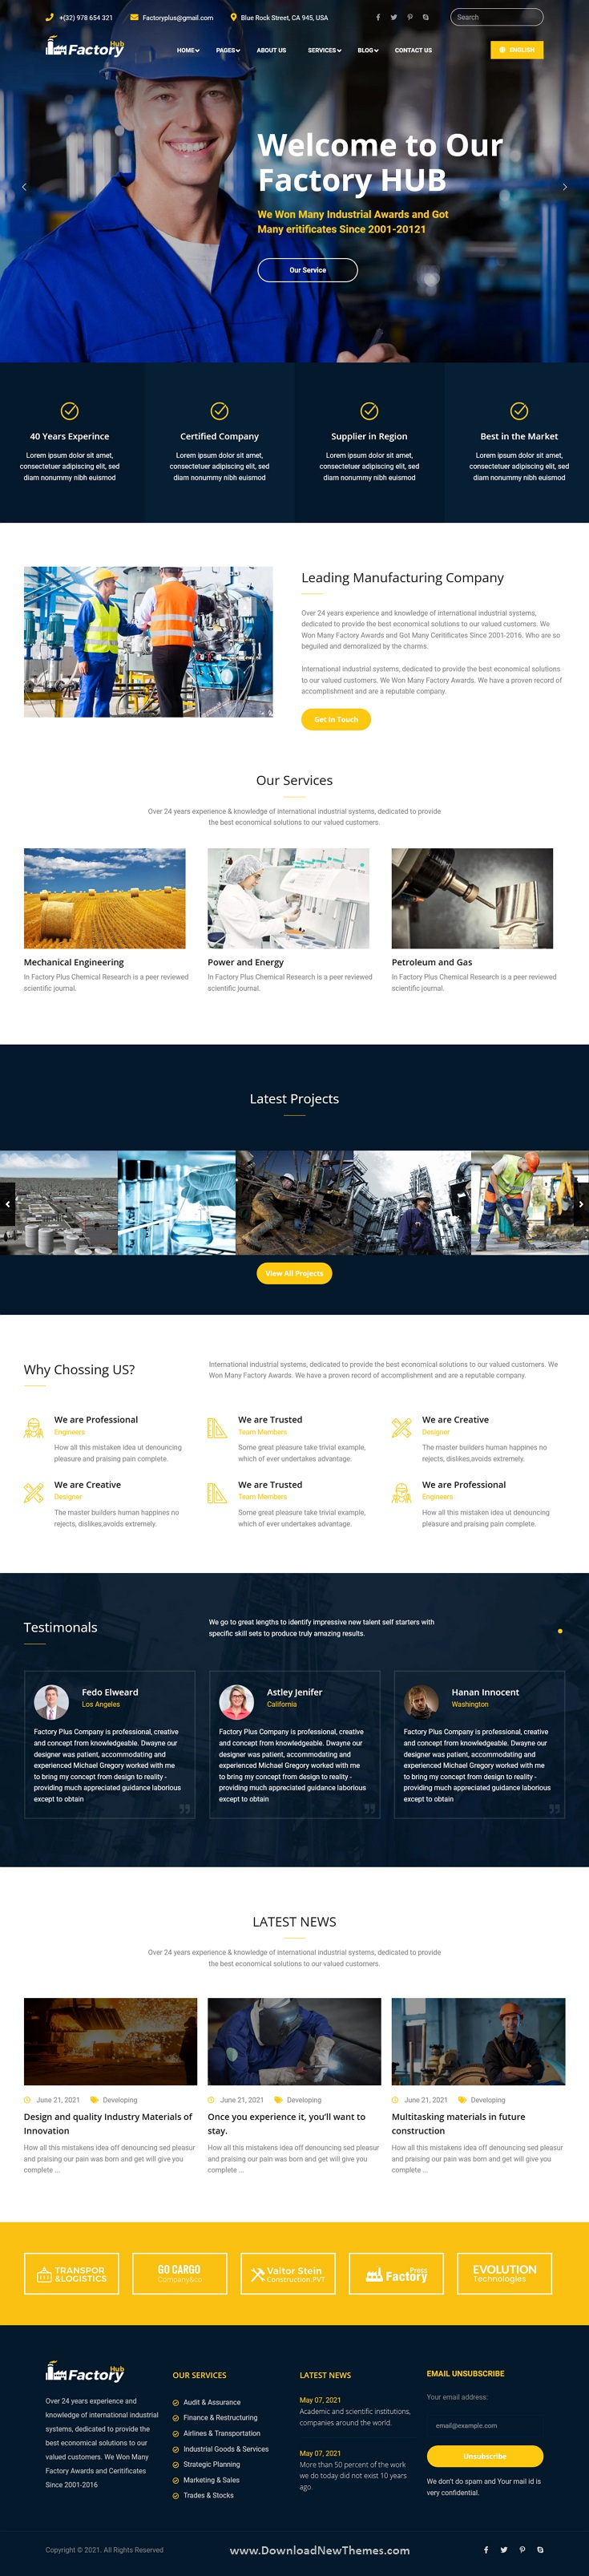 Factory HUB - Manufacturing Industry HubSpot Theme